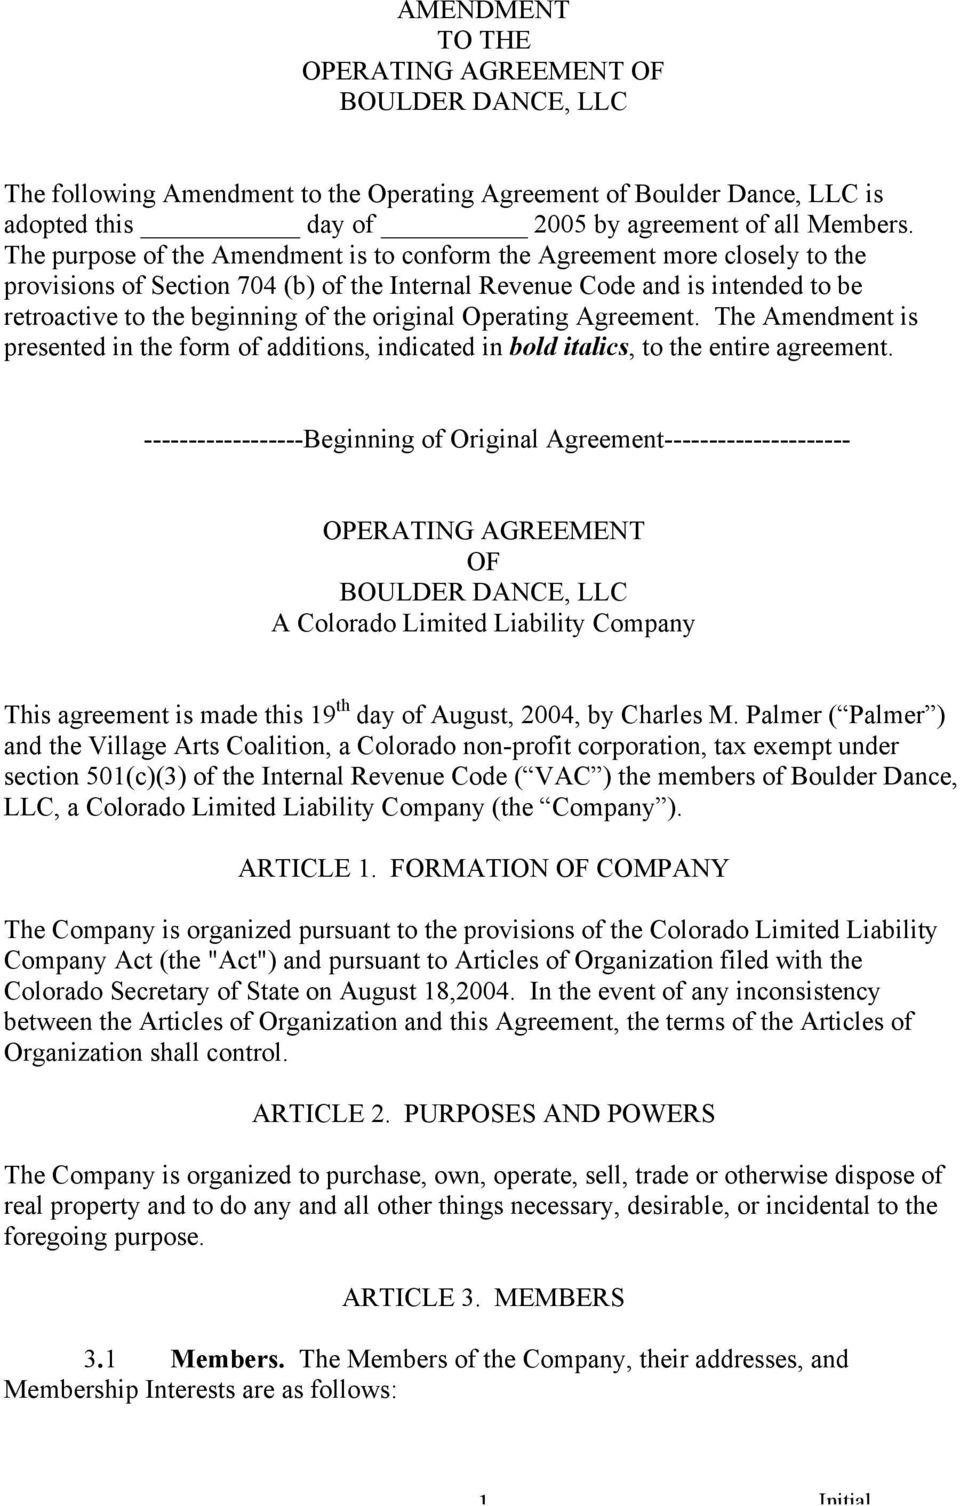 Amendment To The Operating Agreement Of Boulder Dance Llc Pdf